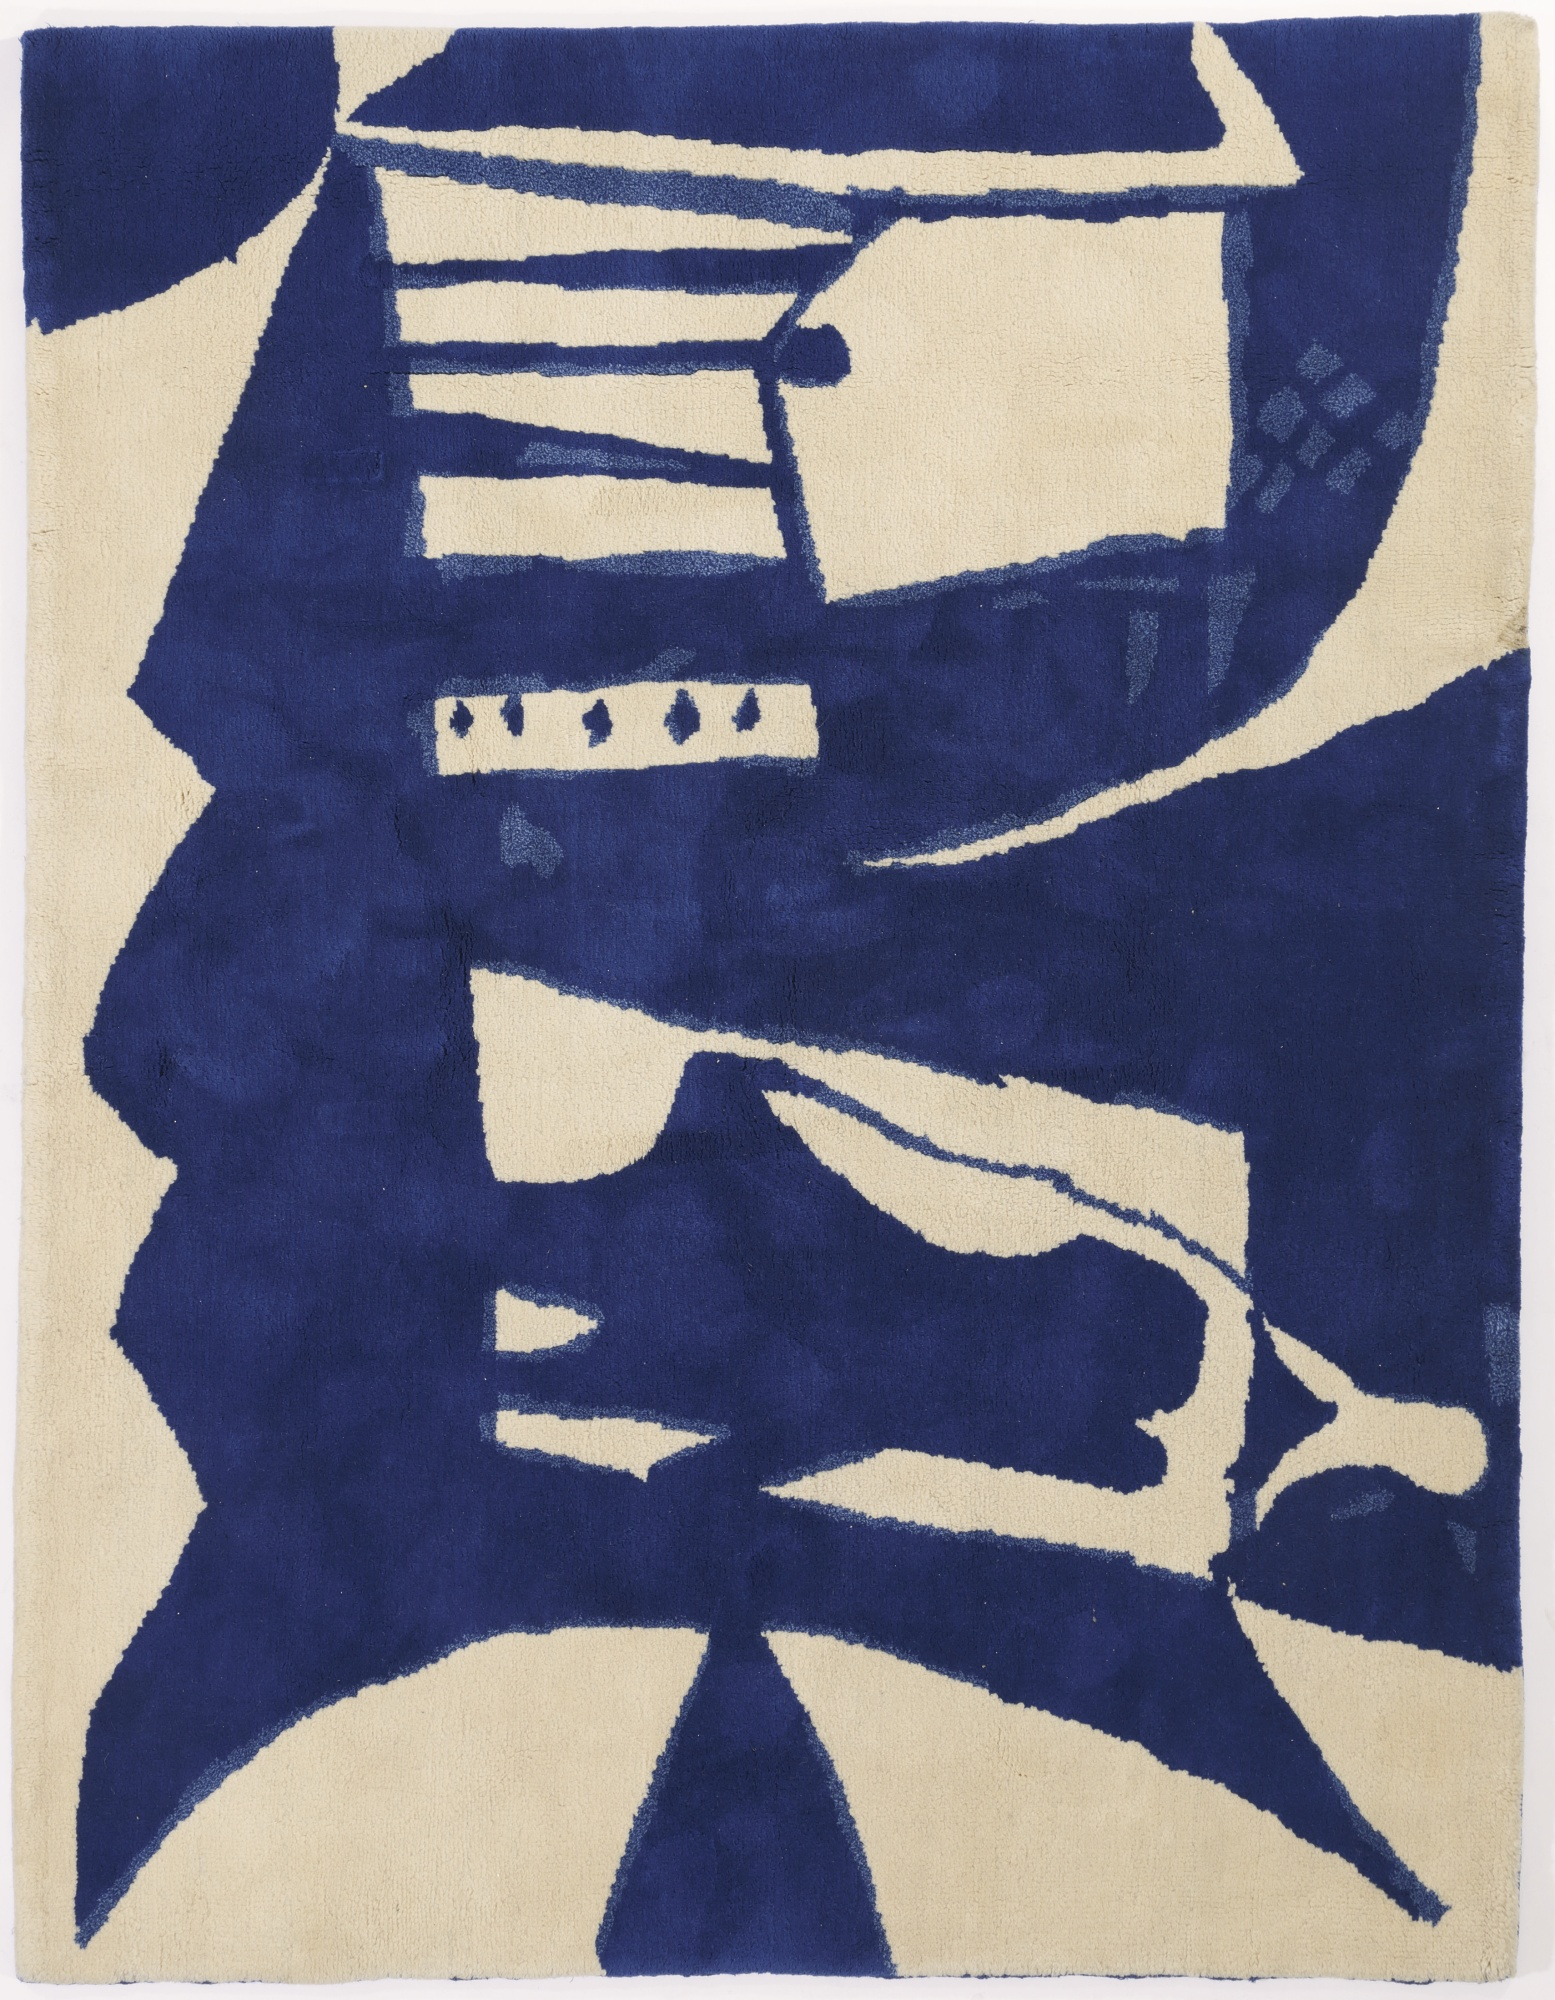 Pablo Picasso-After Pablo Picasso - Ombres-